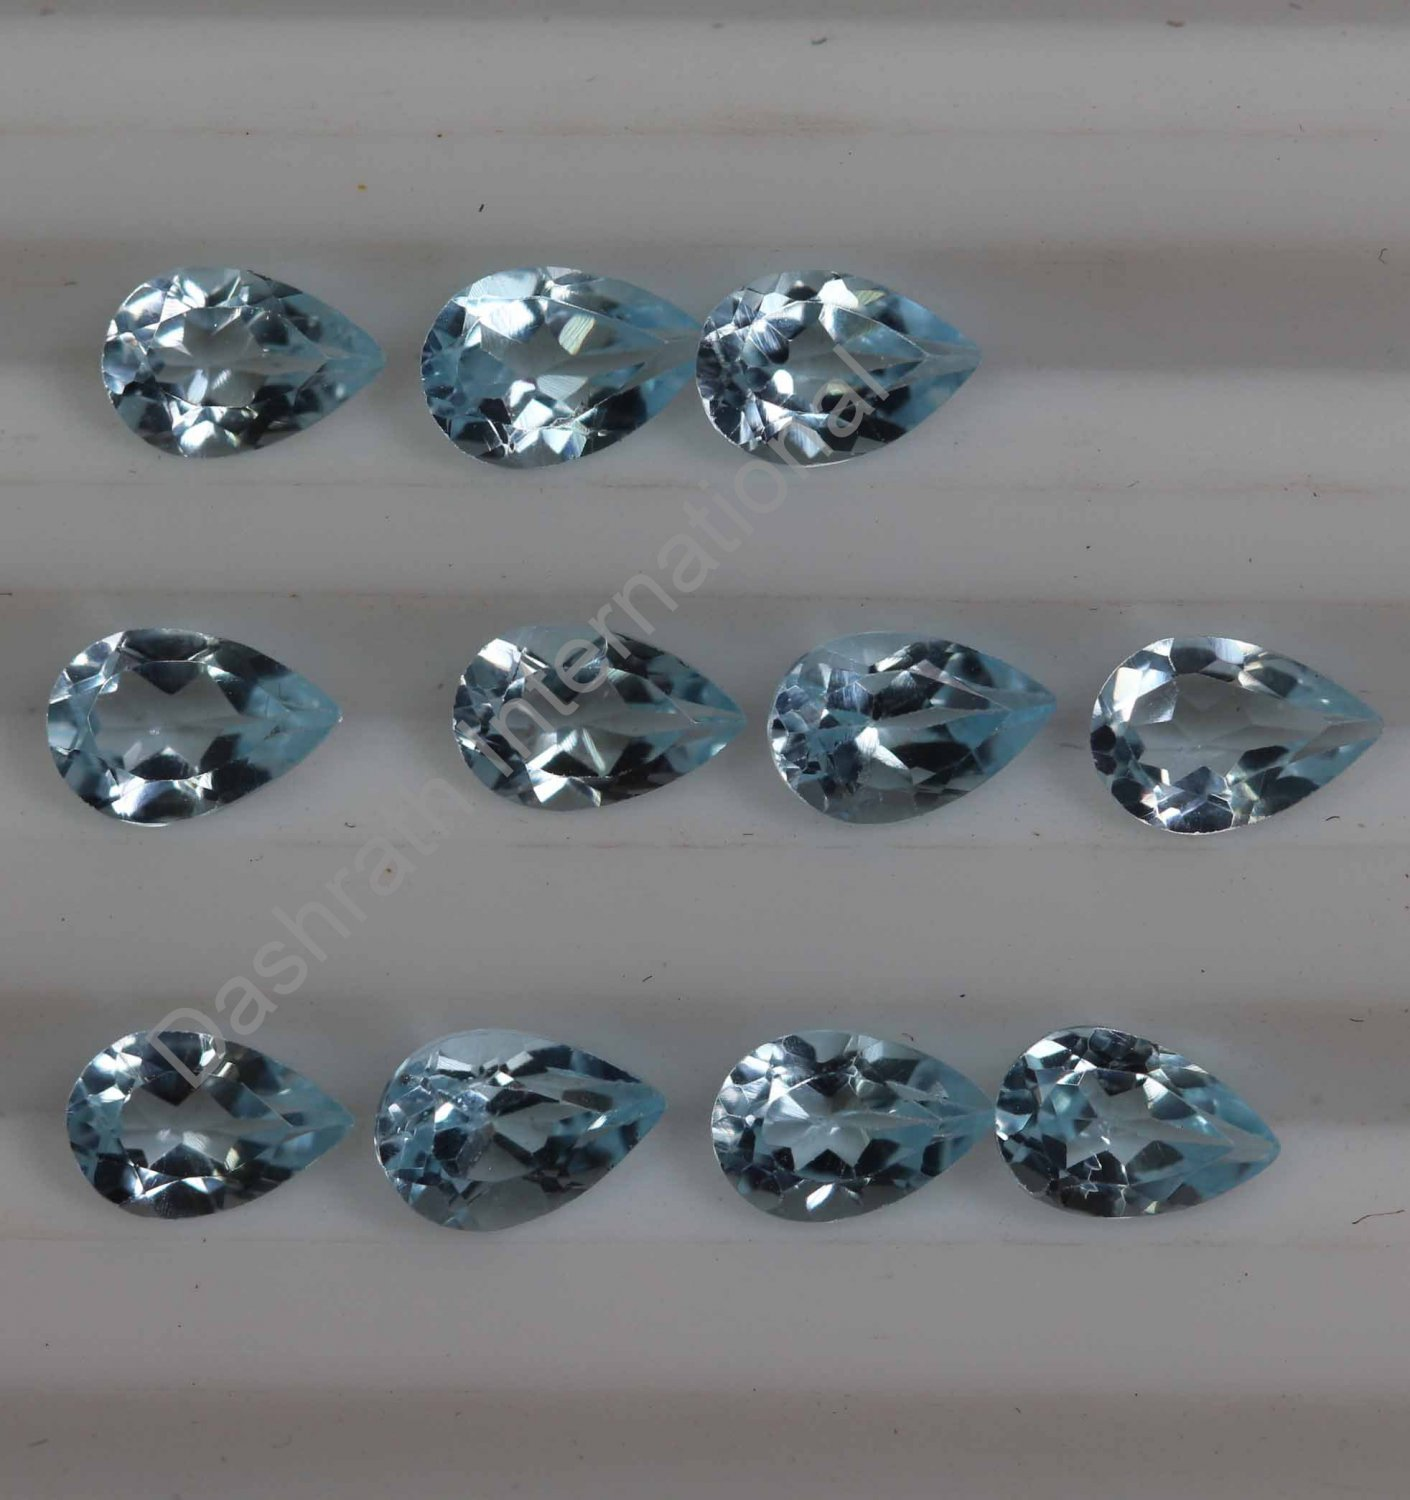 4x6mm Natural Sky Blue Topaz Faceted Cut Pear 25 Pieces Lot  Top Quality Loose Gemstone